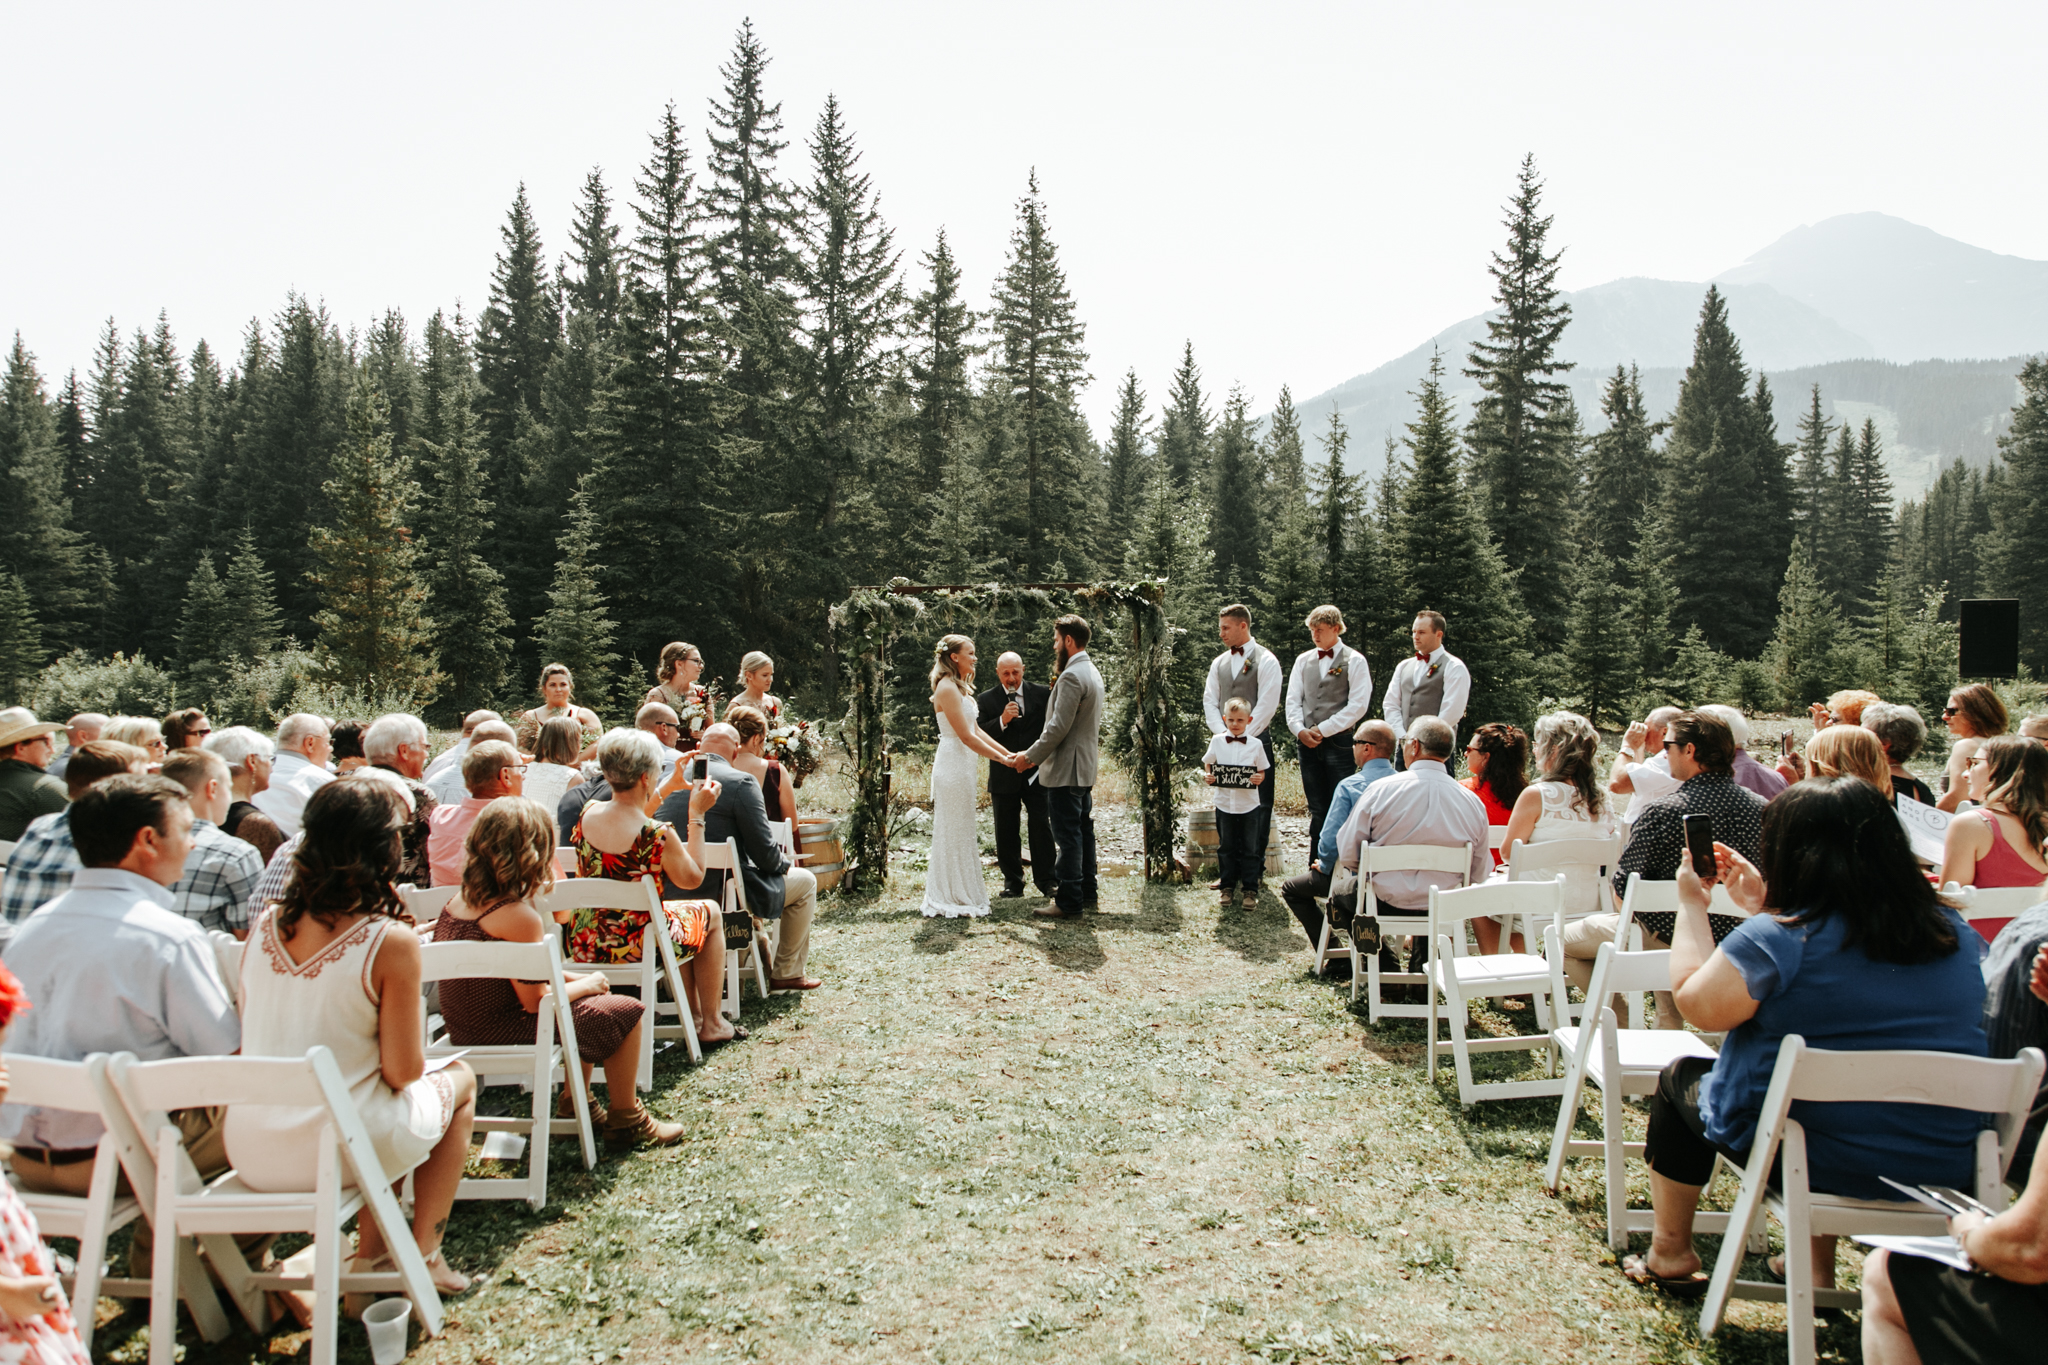 castle-mountain-wedding-photographer-love-and-be-loved-photography-lethbridge-pincher-creek-crowsnest-pass-yannick-rylee-photo-image-picture-67.jpg